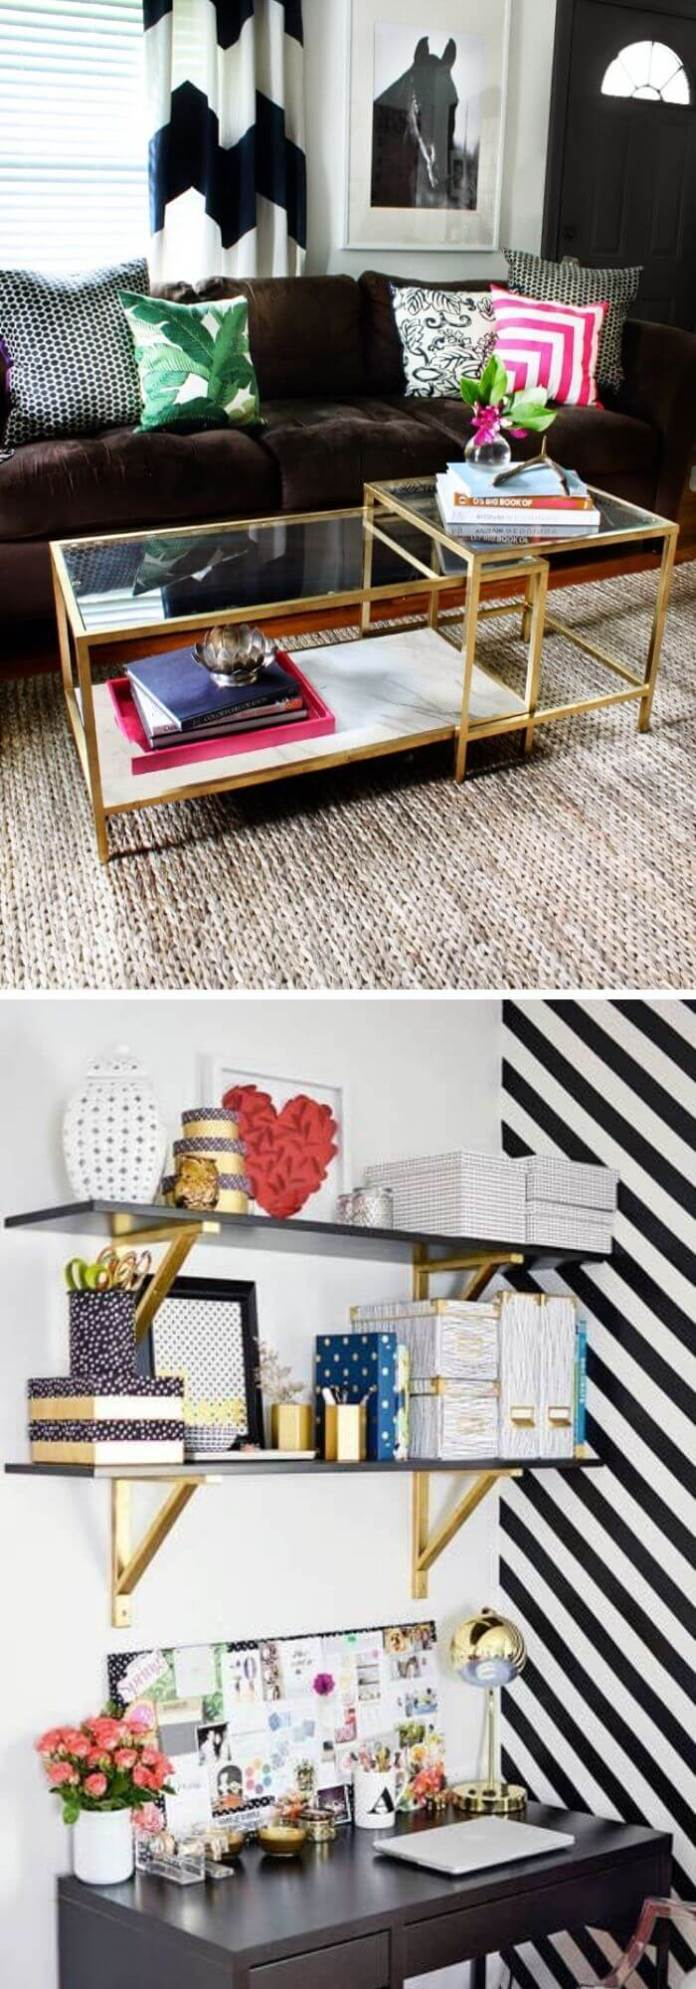 Gold spray paint is to transform everything from coffee tables to the shelf brackets